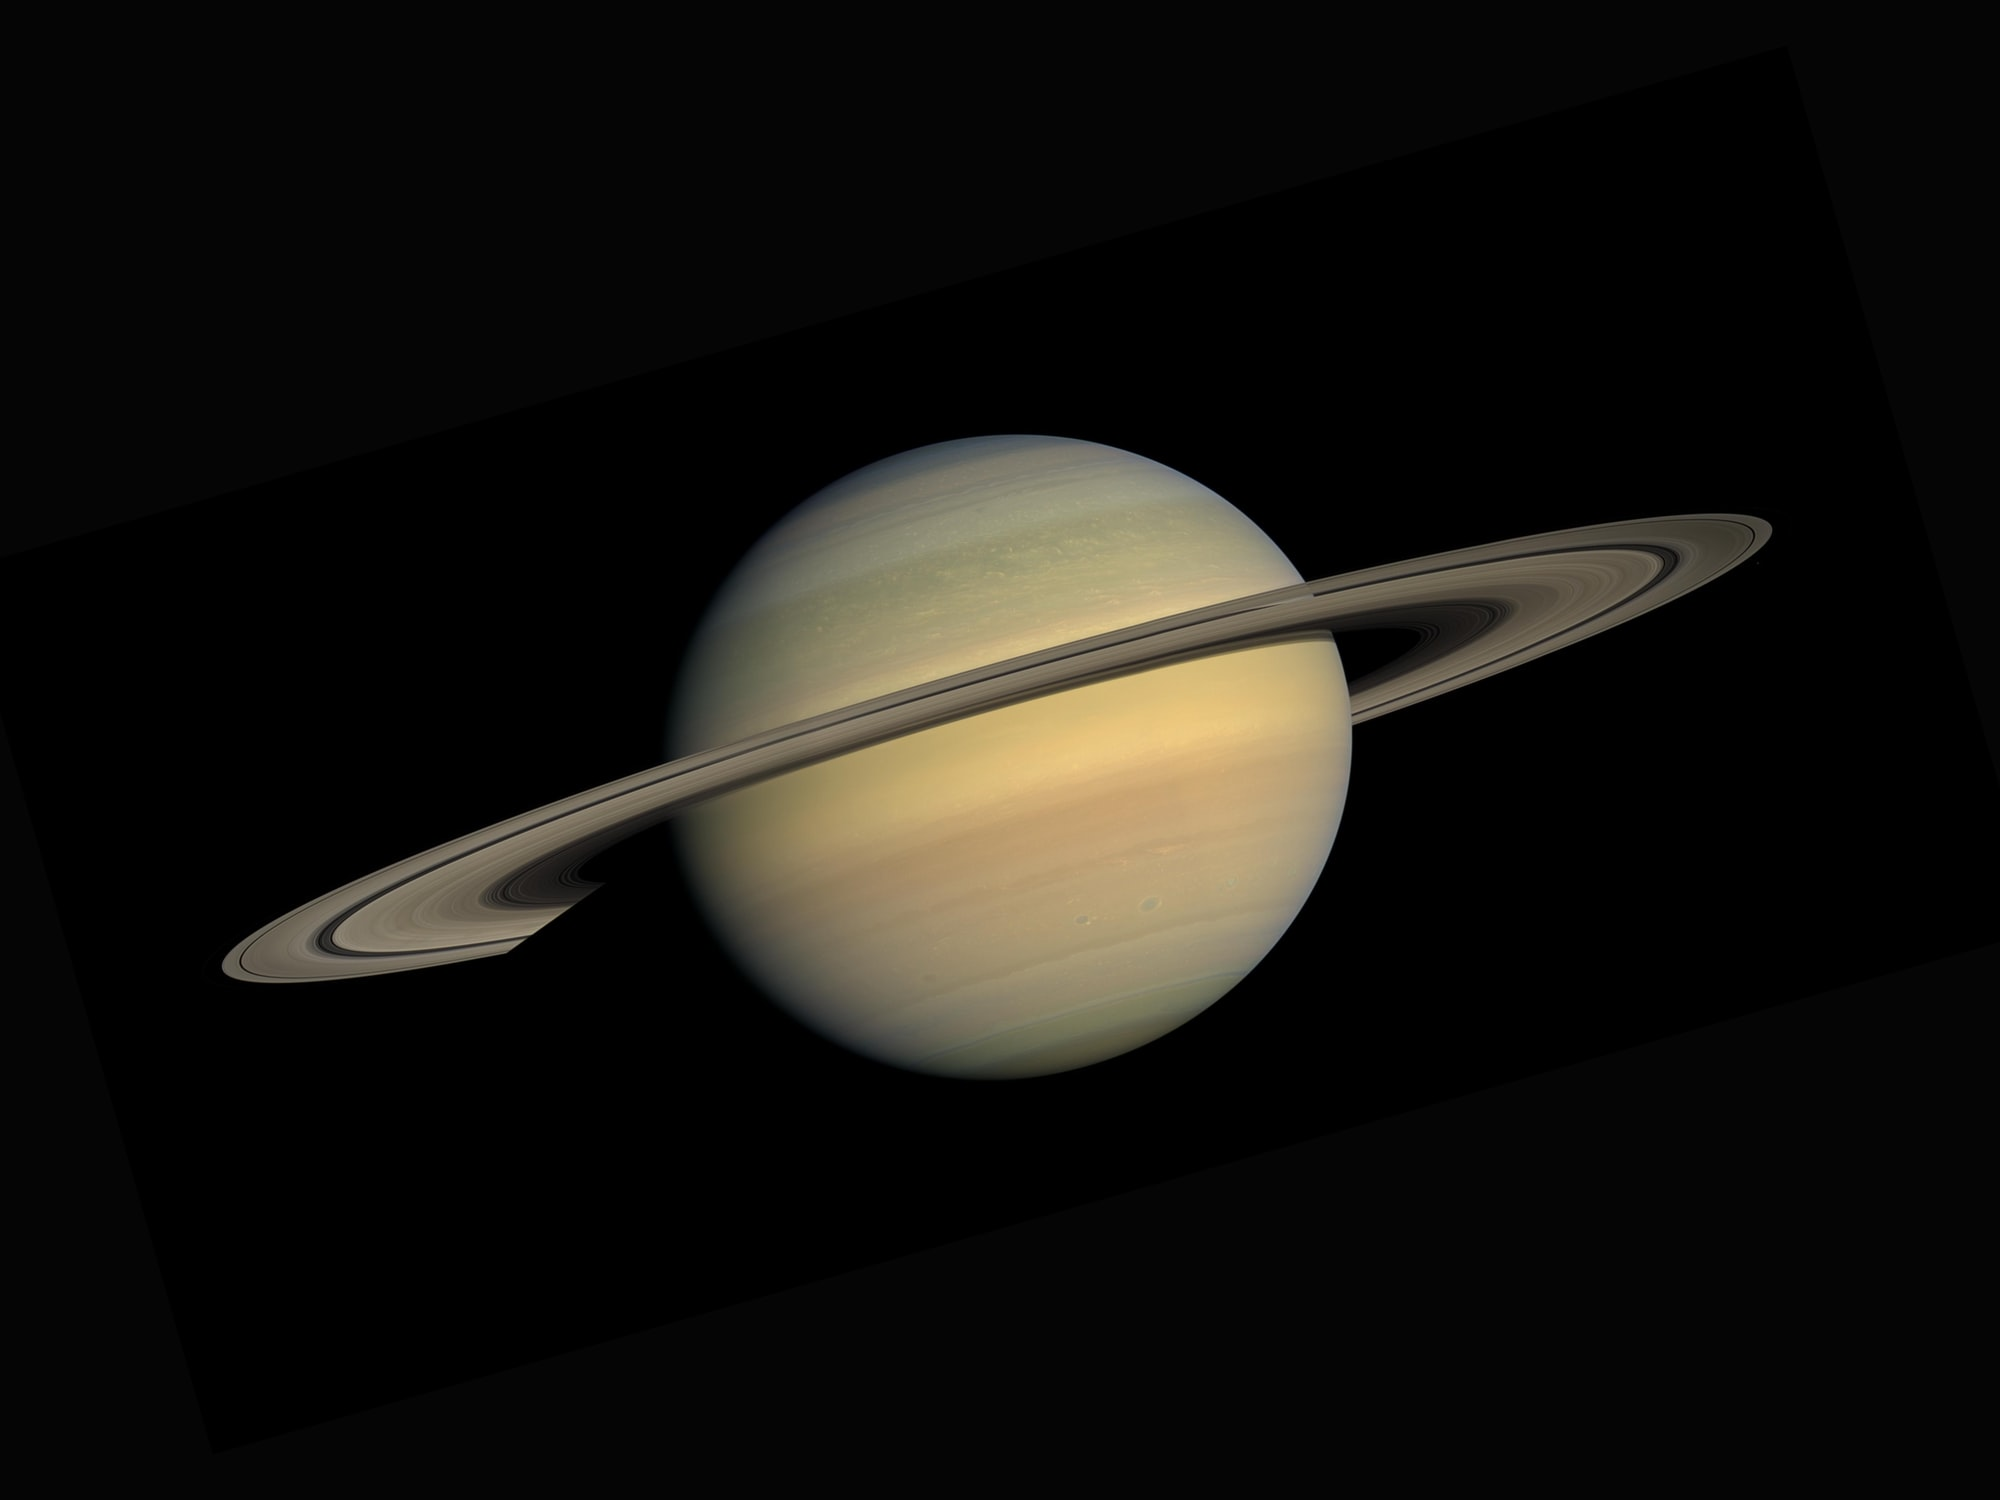 Saturn as seen from the Cassini–Huygens space-research mission